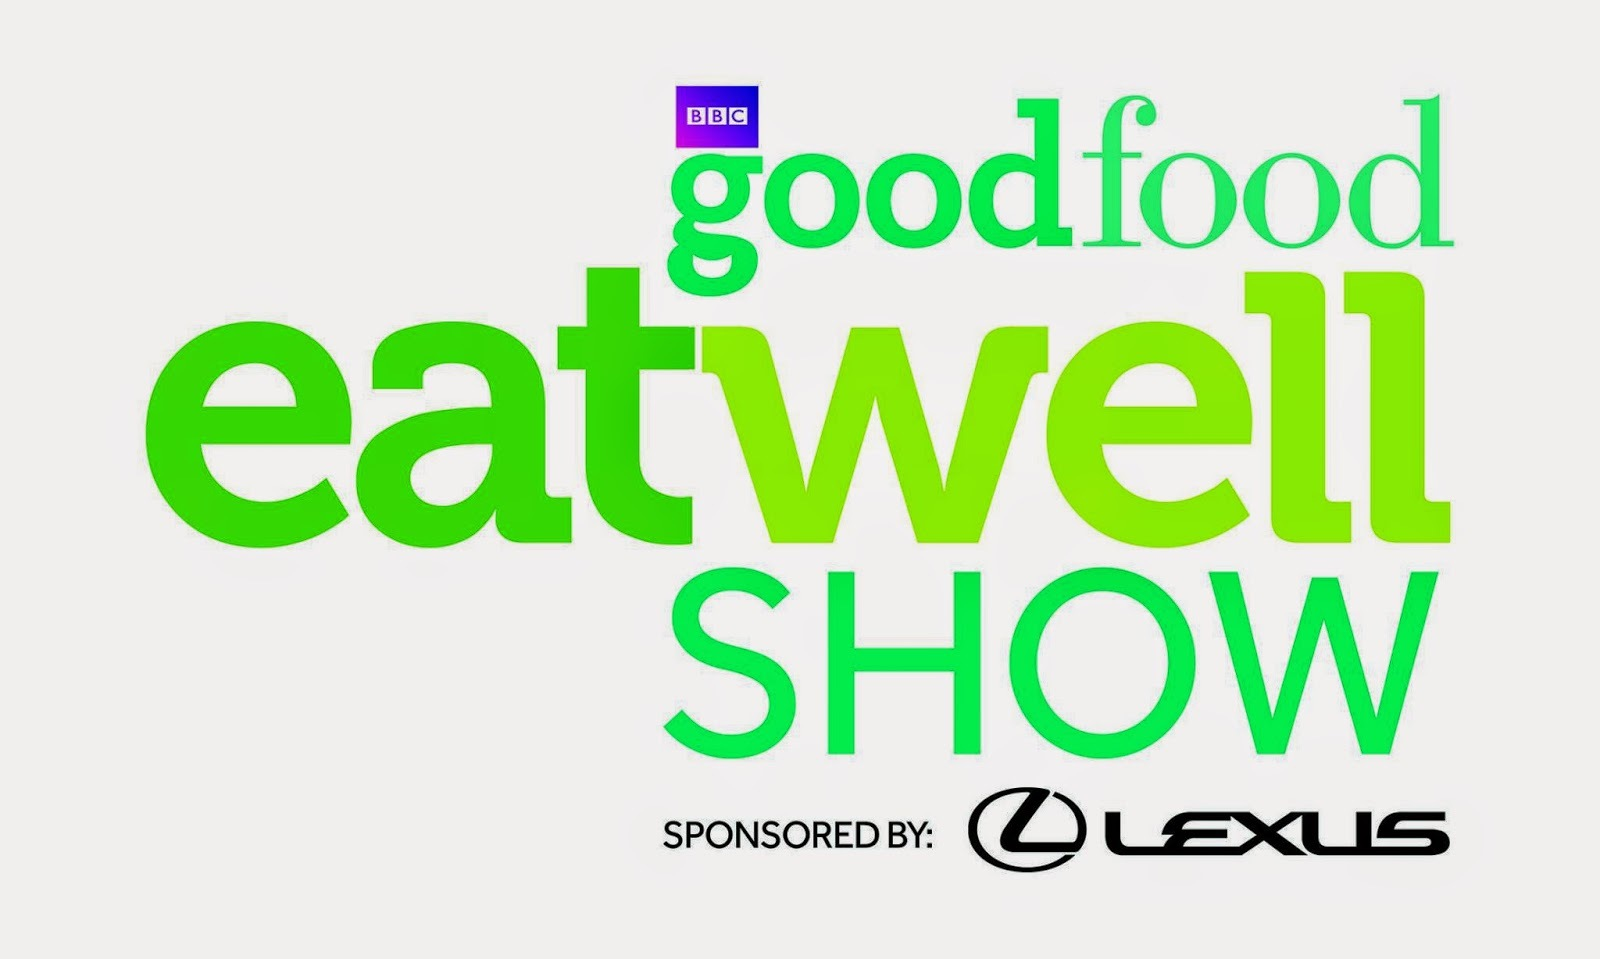 Win Tickets For The BBC Good Food Eat Well Show - Giveaway